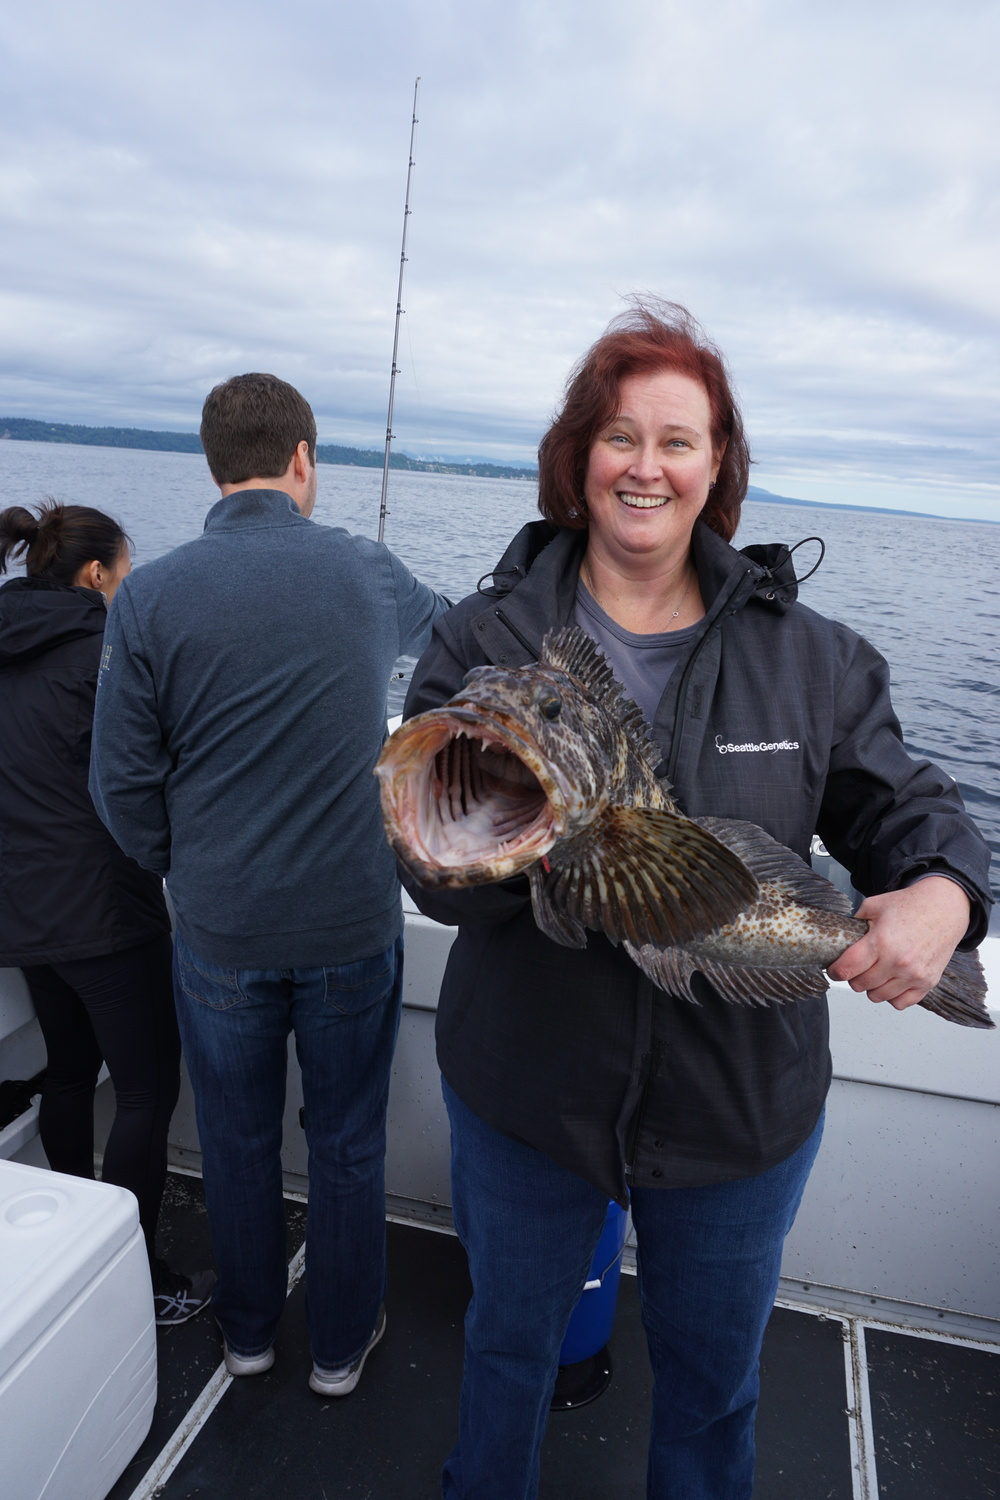 Jo landed this nice Ling after hooking (and releasing) a number of Rock Fish.